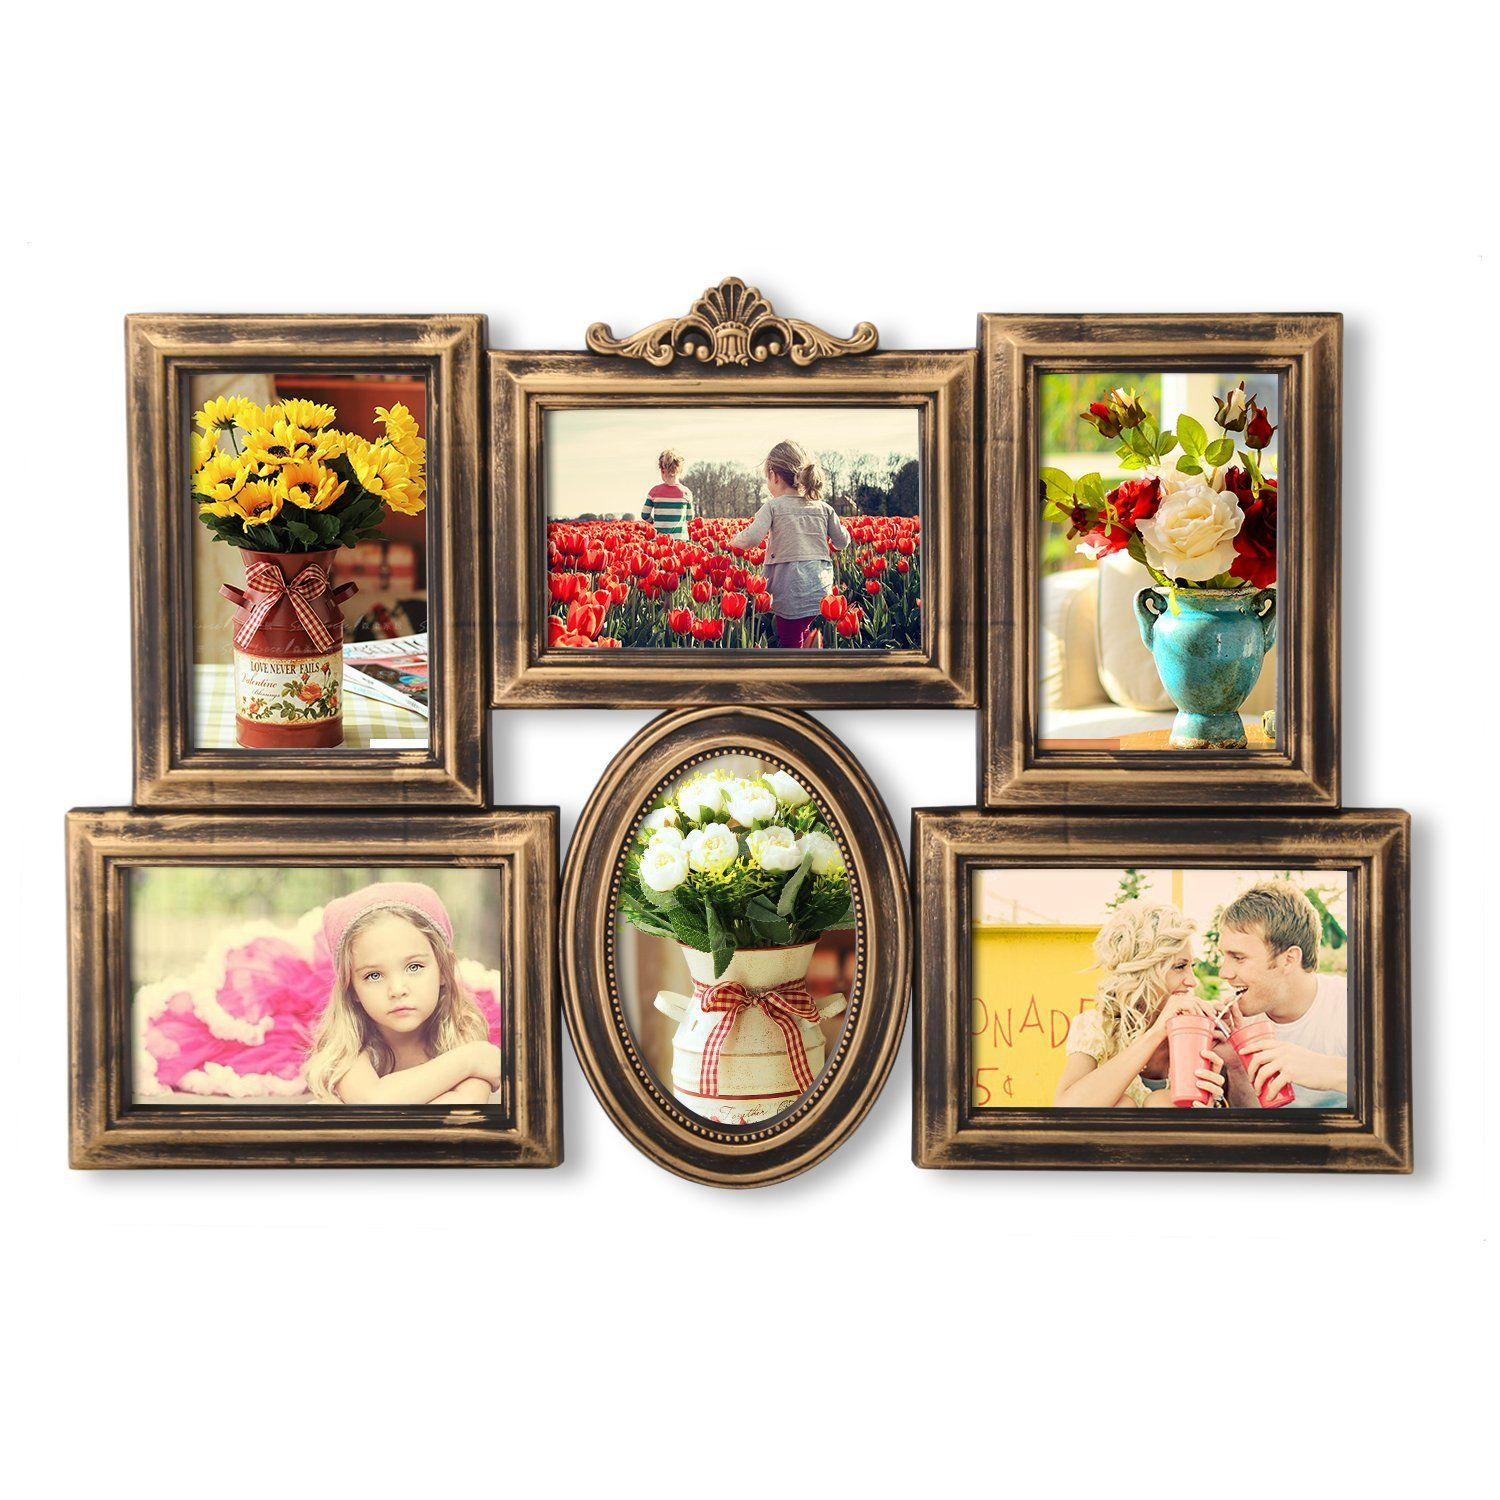 Asense antique golden collage photo frame wall hanging 4